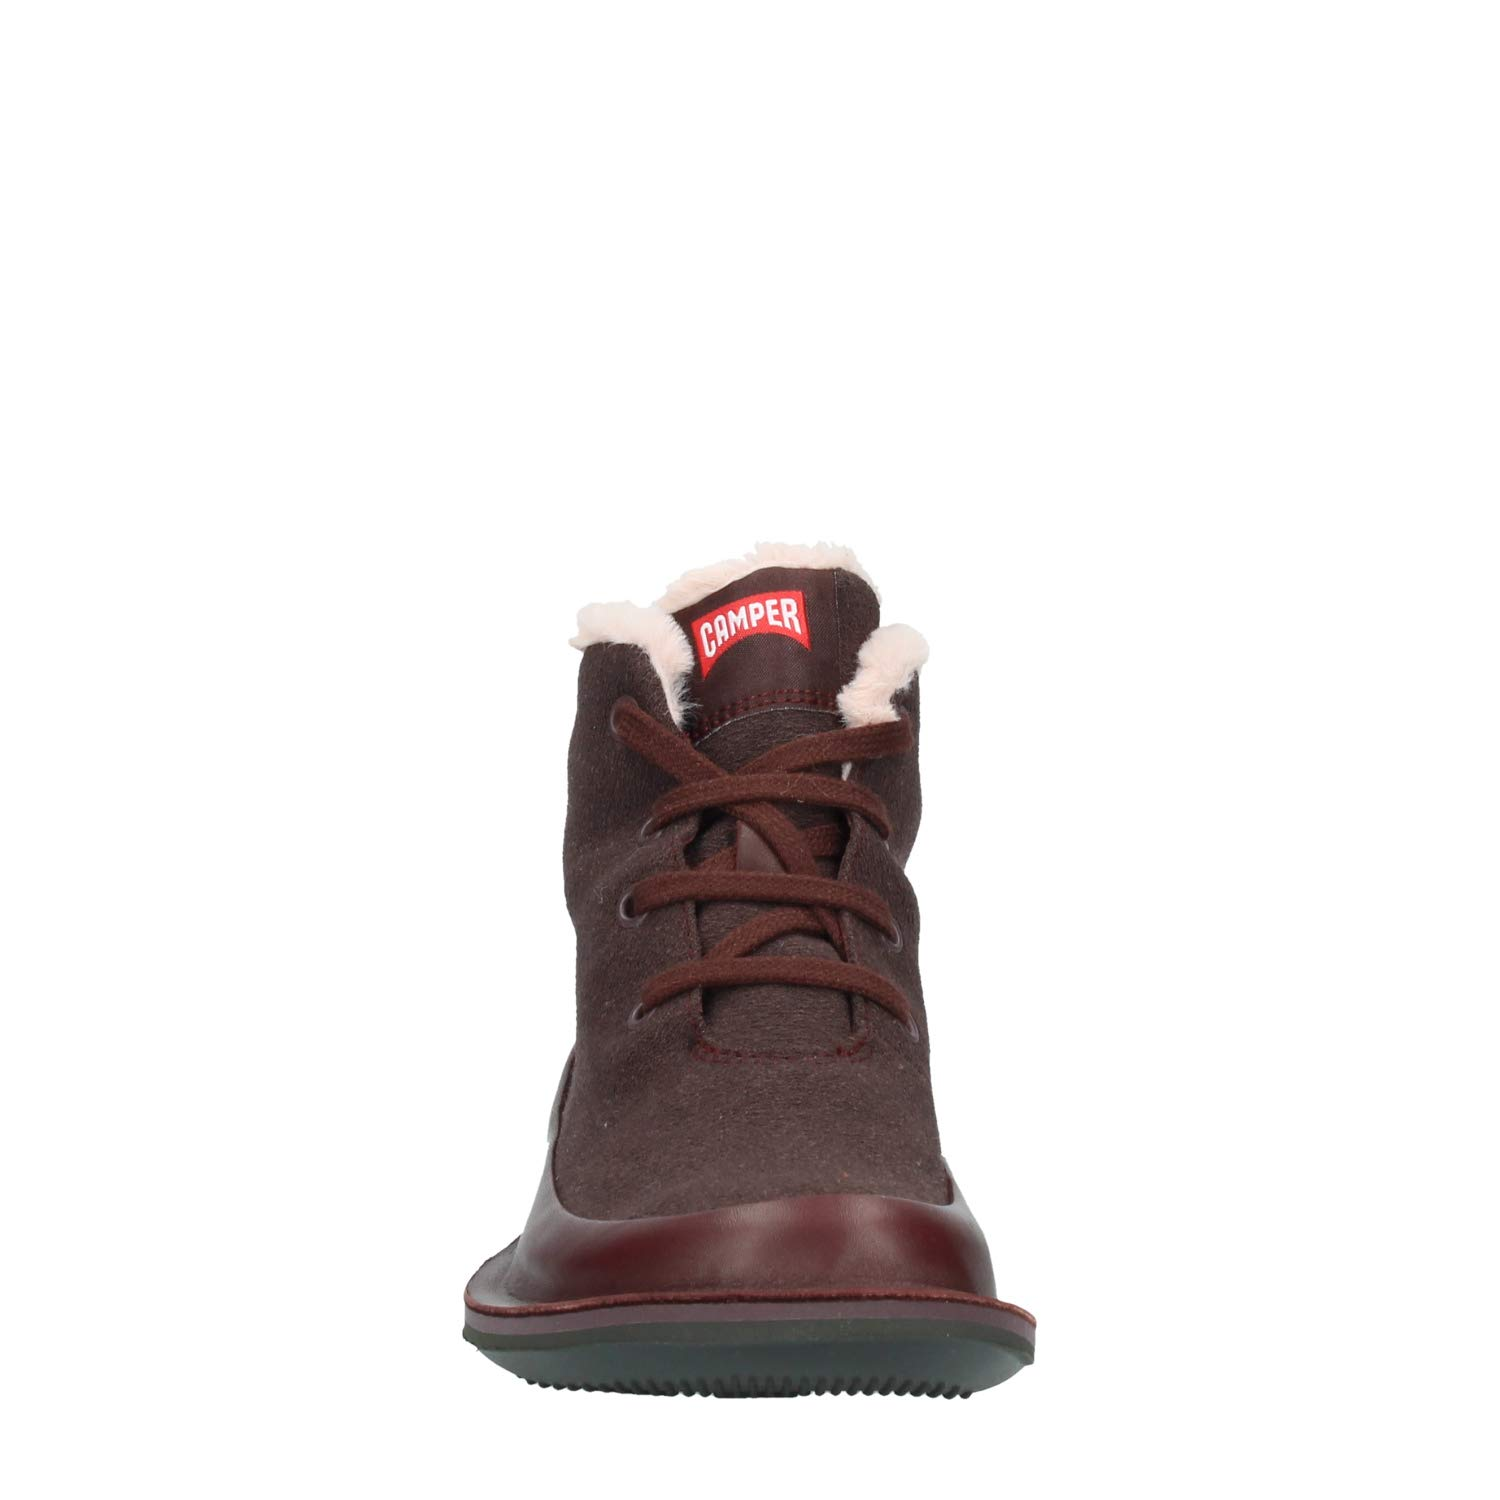 Camper Mujer Beetle Textile Leather Botas: Amazon.es